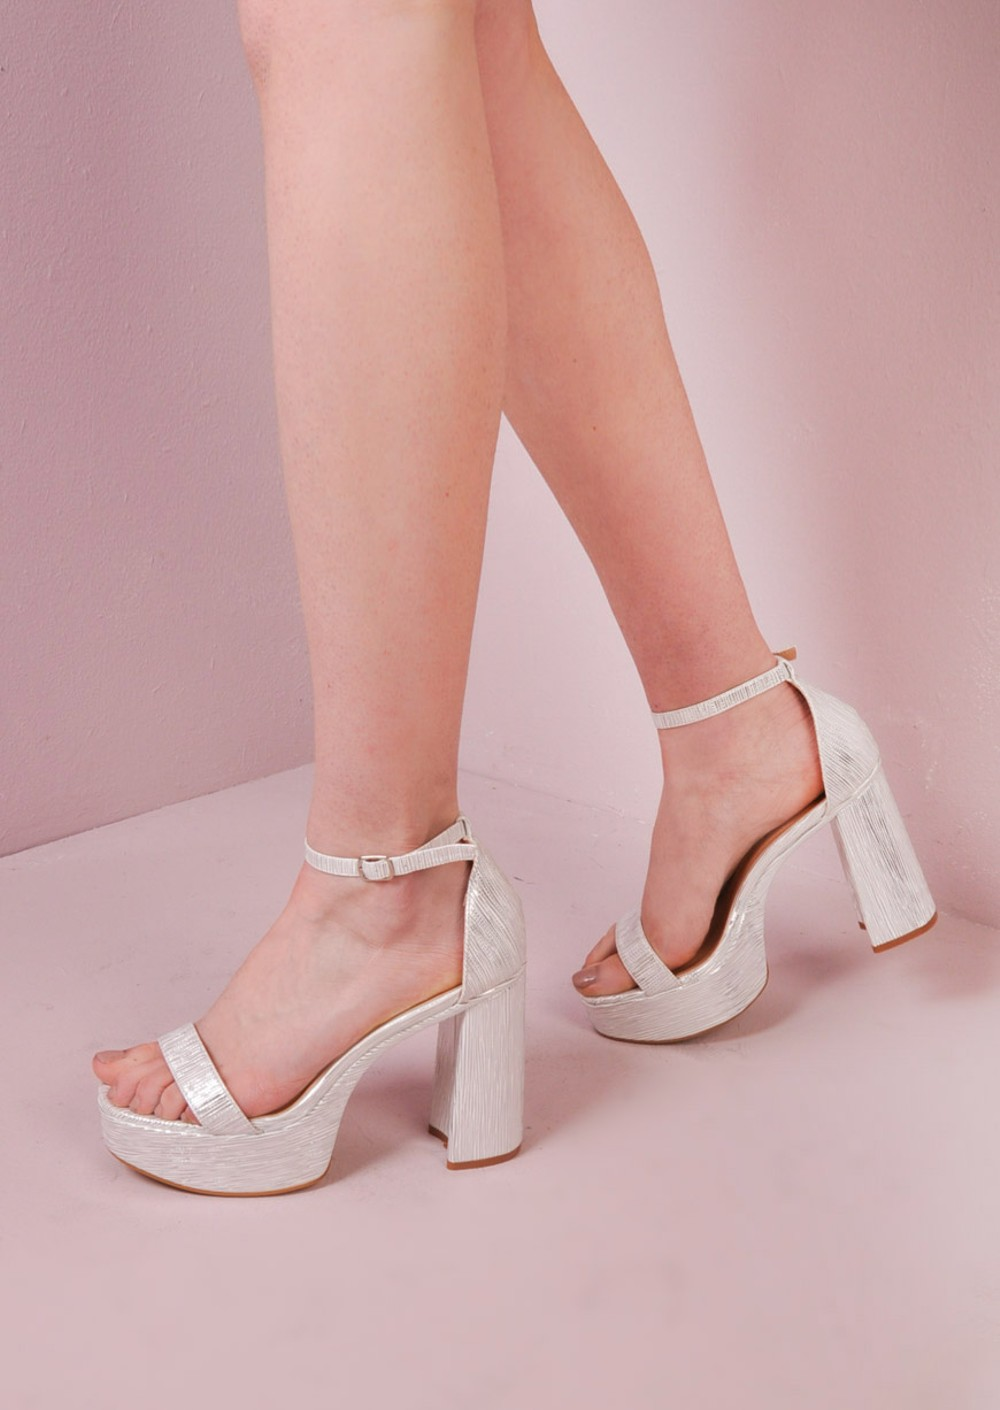 70's Chunky Heel Platform Sandals Silver